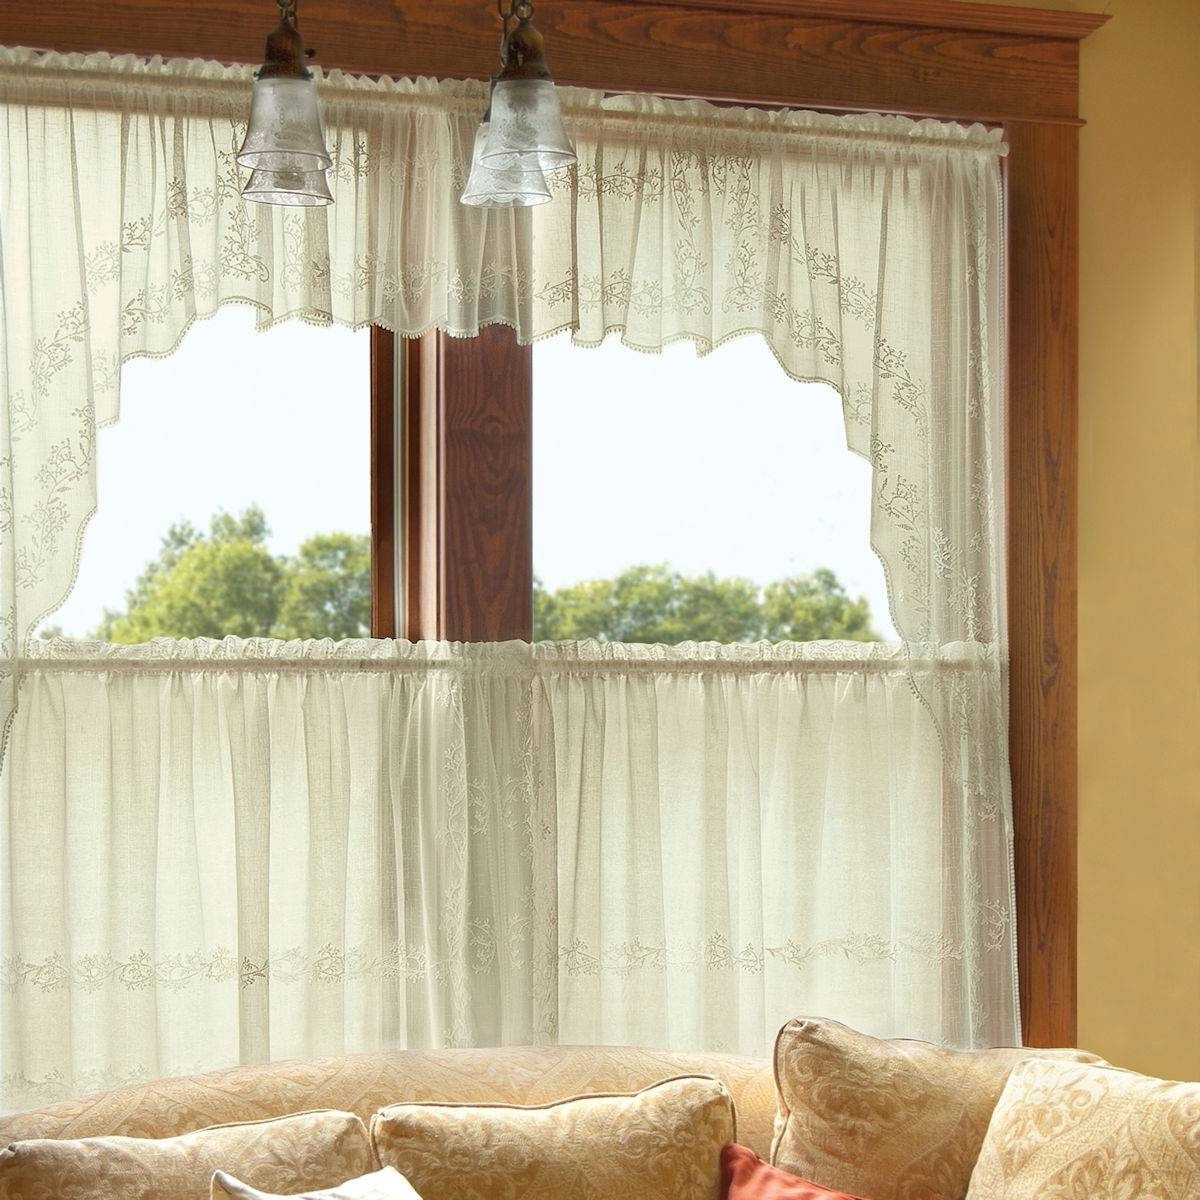 Appealing Lace Curtain Valances And Tiers Ideas Kitchen For Best And Newest Solid Microfiber 3 Piece Kitchen Curtain Valance And Tiers Sets (View 17 of 20)